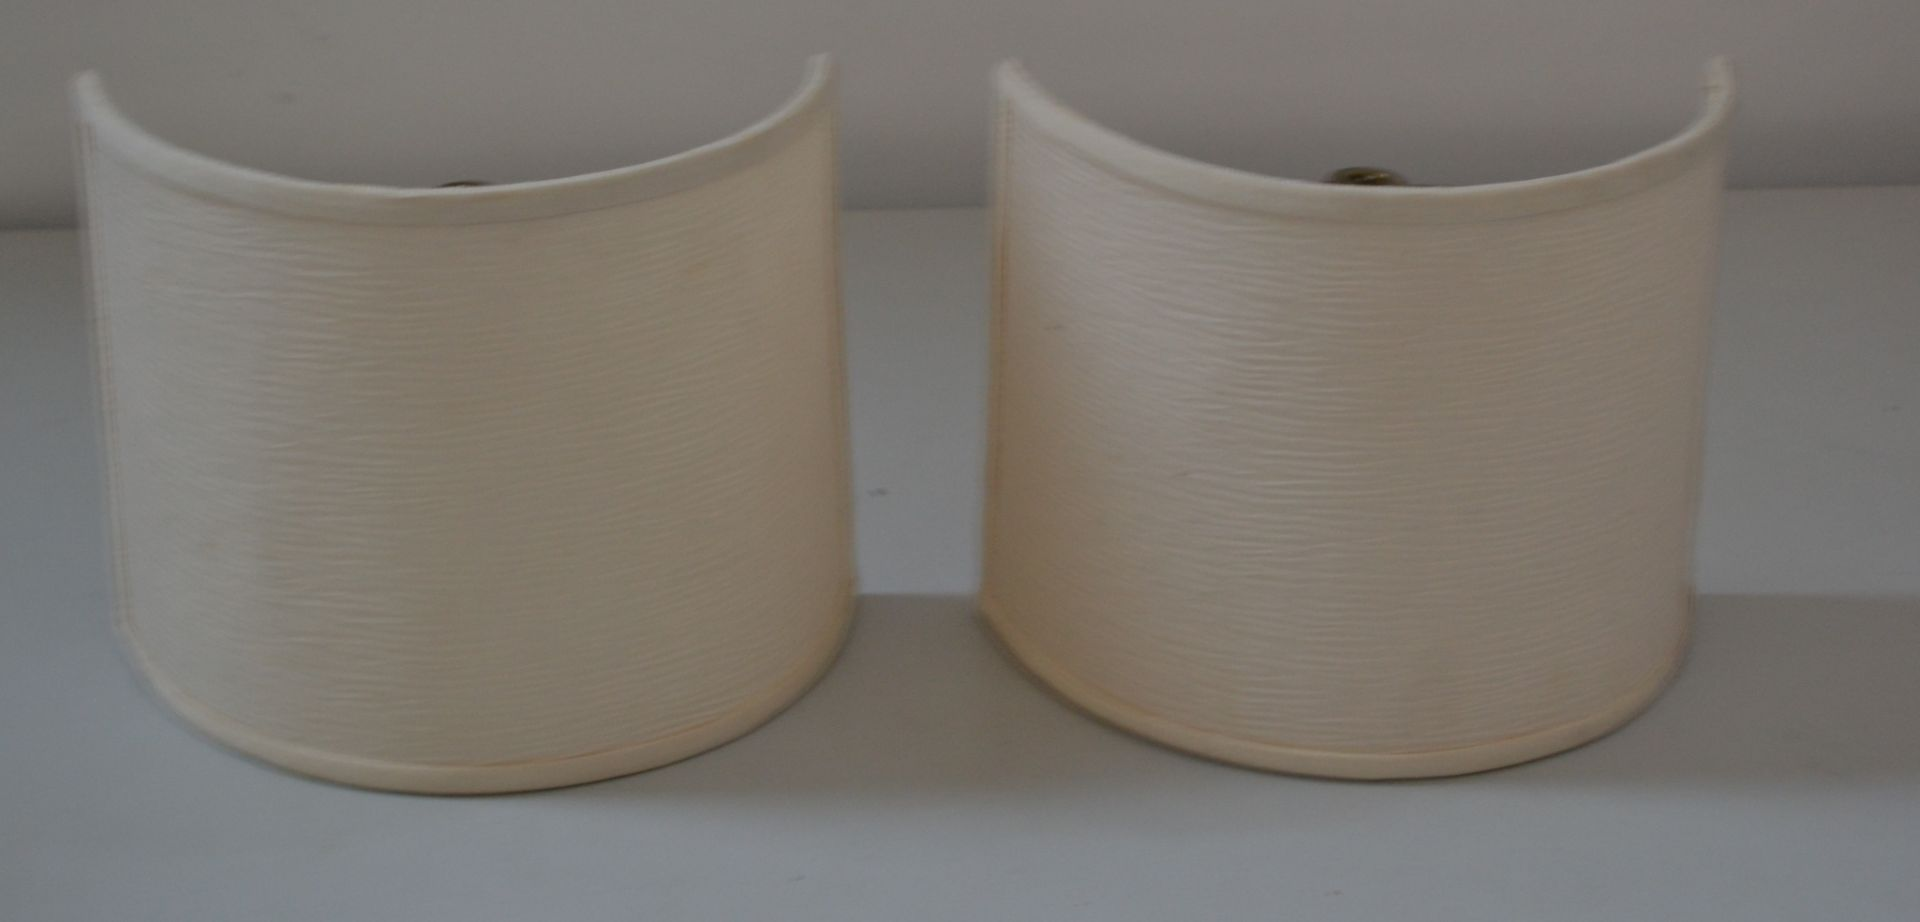 Lot 7418 - 1 x Pair of Wall Light Shades In Cream And Buzzi & Buzzi White Wall Light - Ref J2191 - CL314